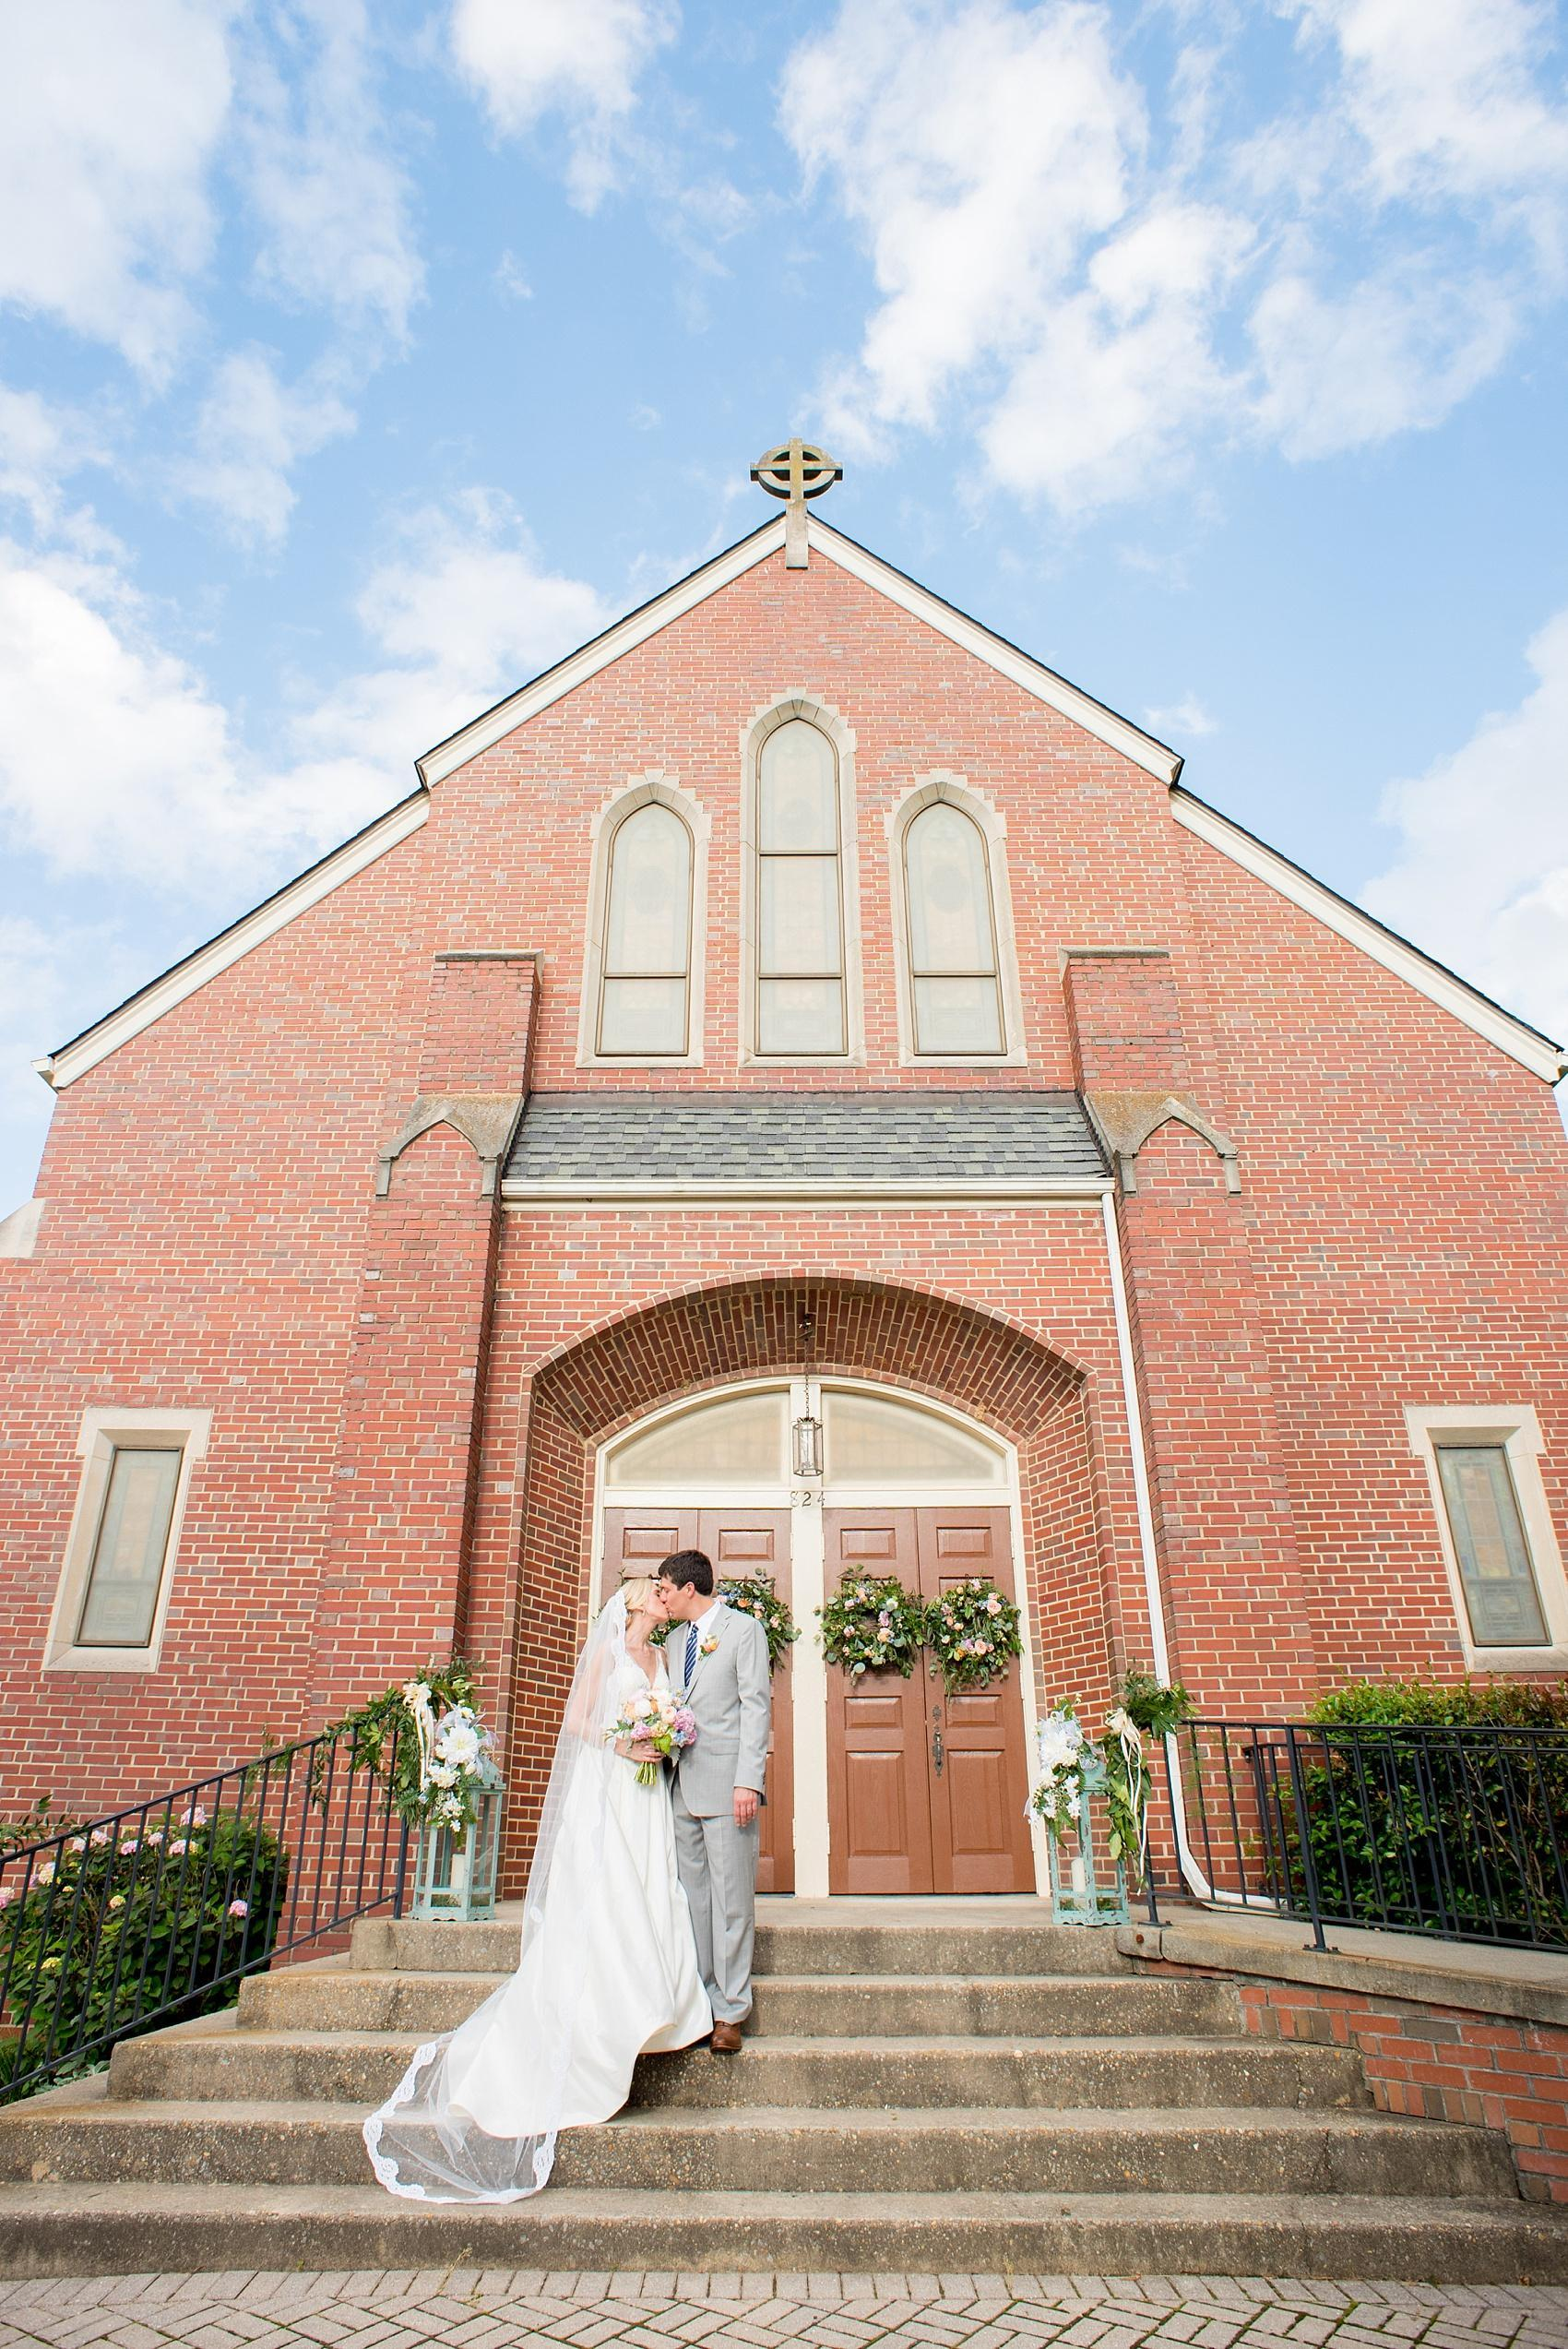 Mikkel Paige Photography photos of a downtown Raleigh wedding with pictures of the bride and groom at Trinity church.